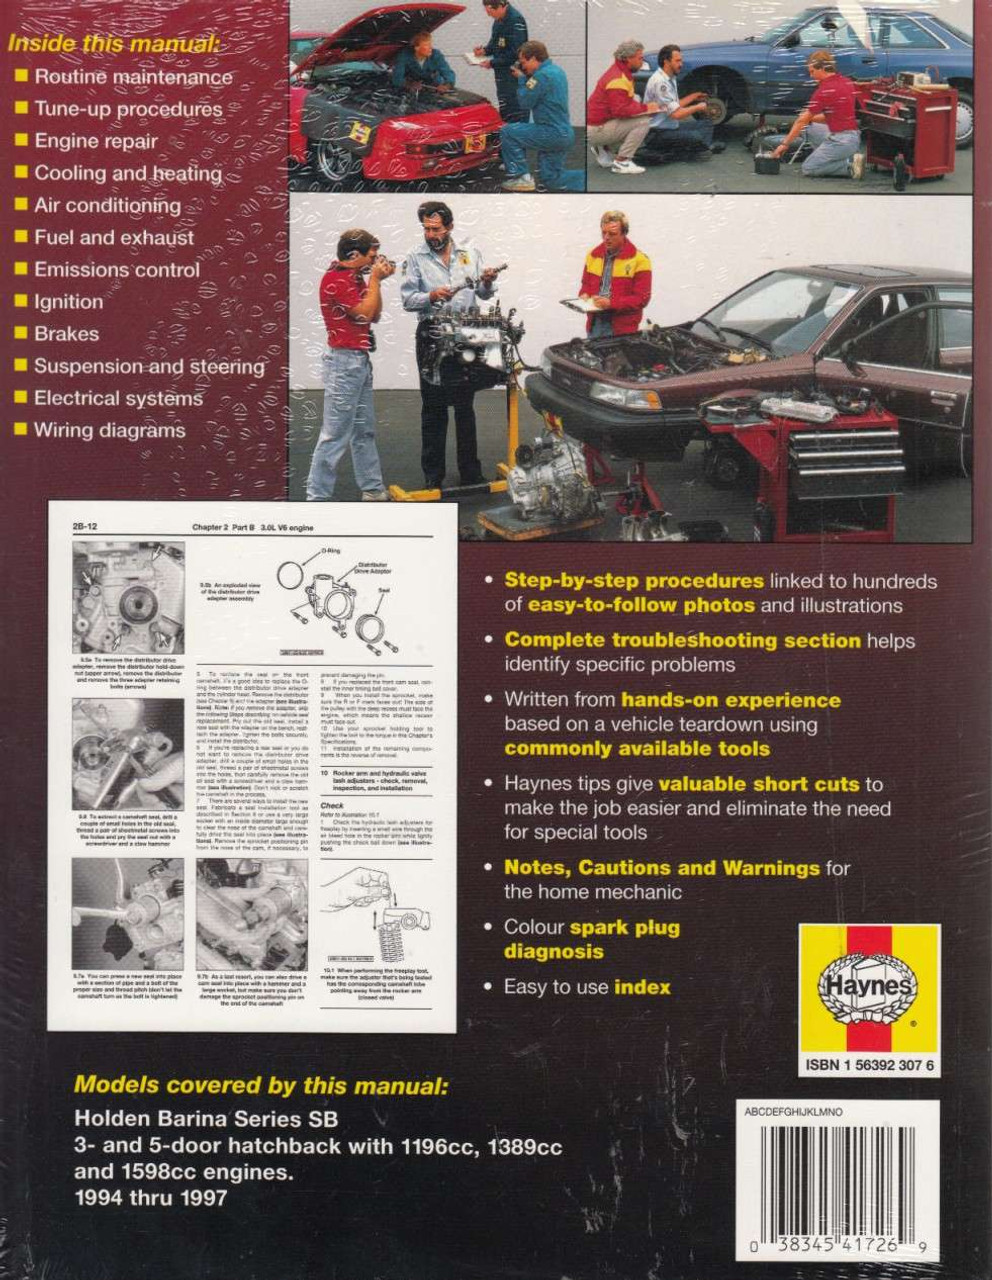 ... Holden Barina Series SB 1994 - 1997 Workshop Manual Back Cover